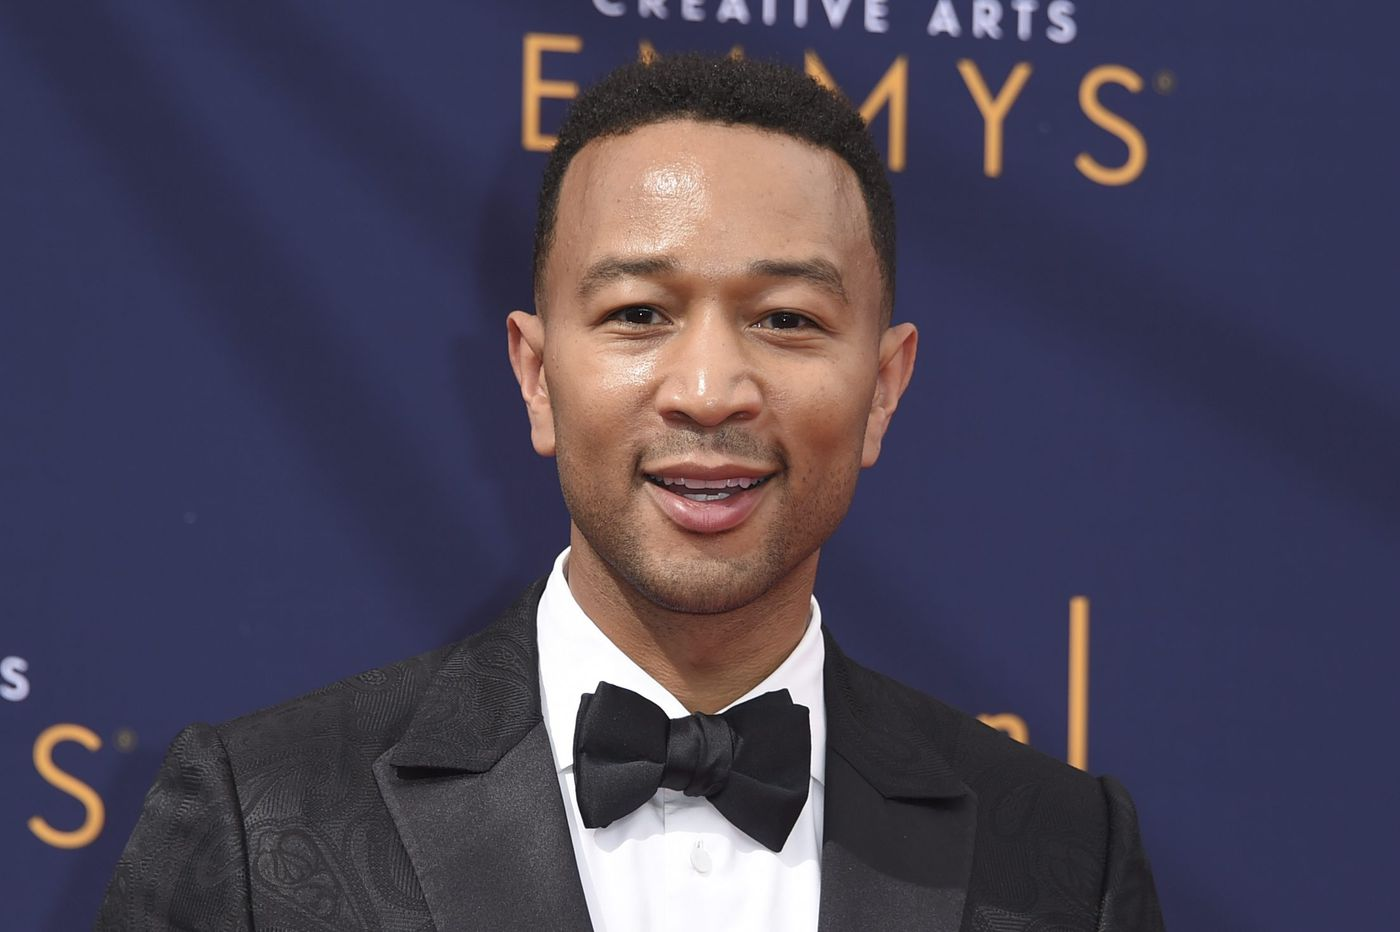 Penn alum John Legend becomes first black man, youngest person to win EGOT